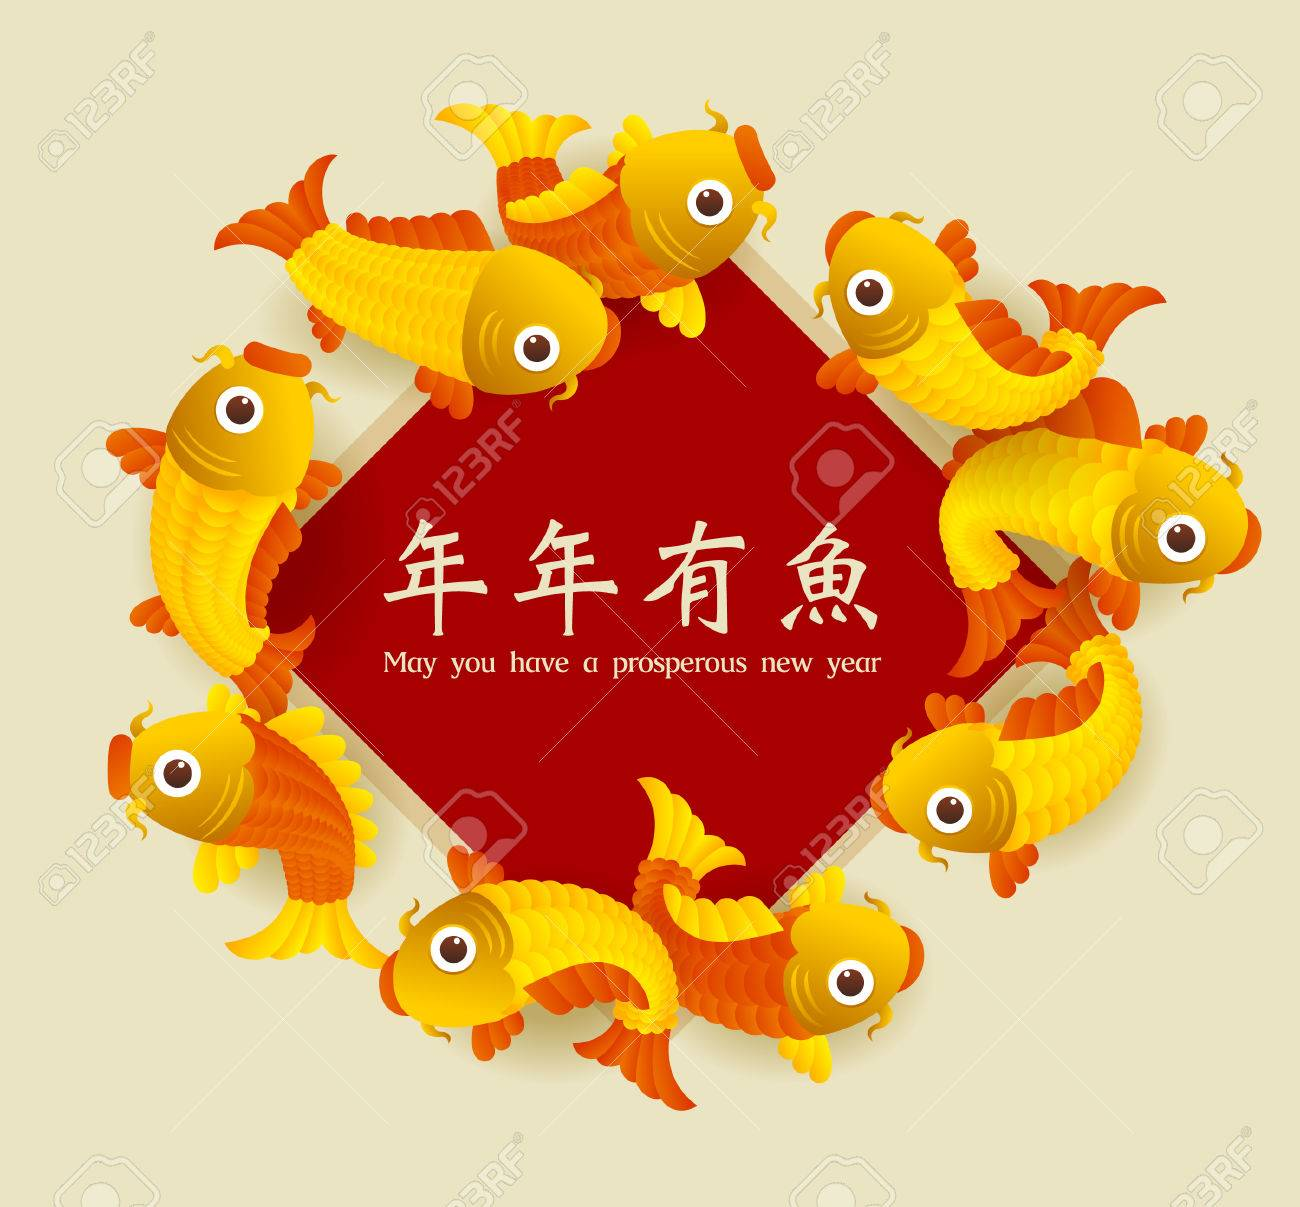 happy new year chinese characters and the symbol of happiness in the form of fish translation